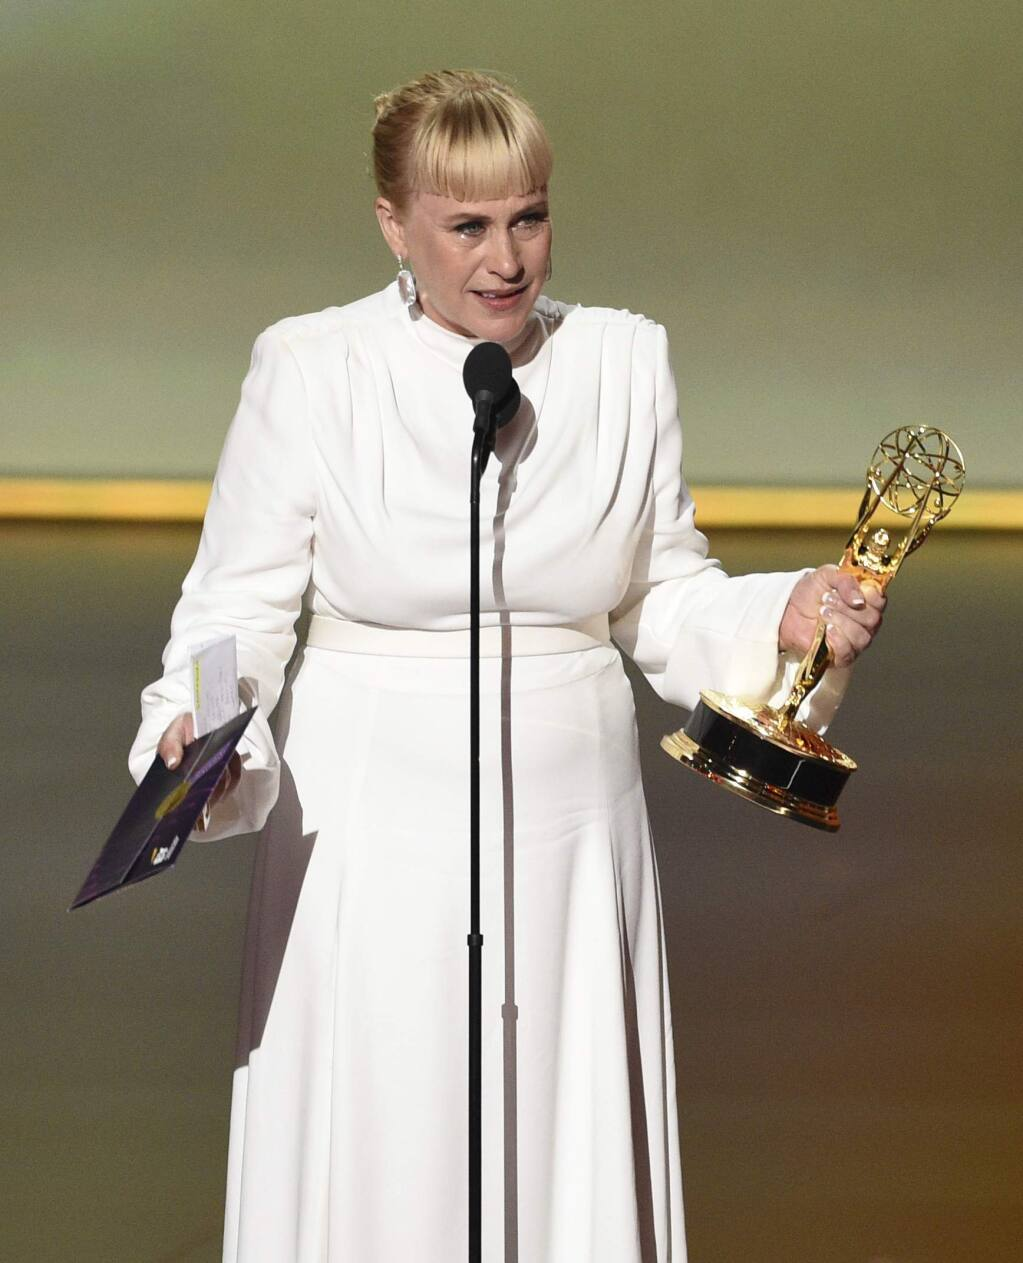 Patricia Arquette accepts the award for outstanding supporting actress in a limited series or movie for 'The Act' at the 71st Primetime Emmy Awards on Sunday, Sept. 22, 2019, at the Microsoft Theater in Los Angeles. (Photo by Chris Pizzello/Invision/AP)